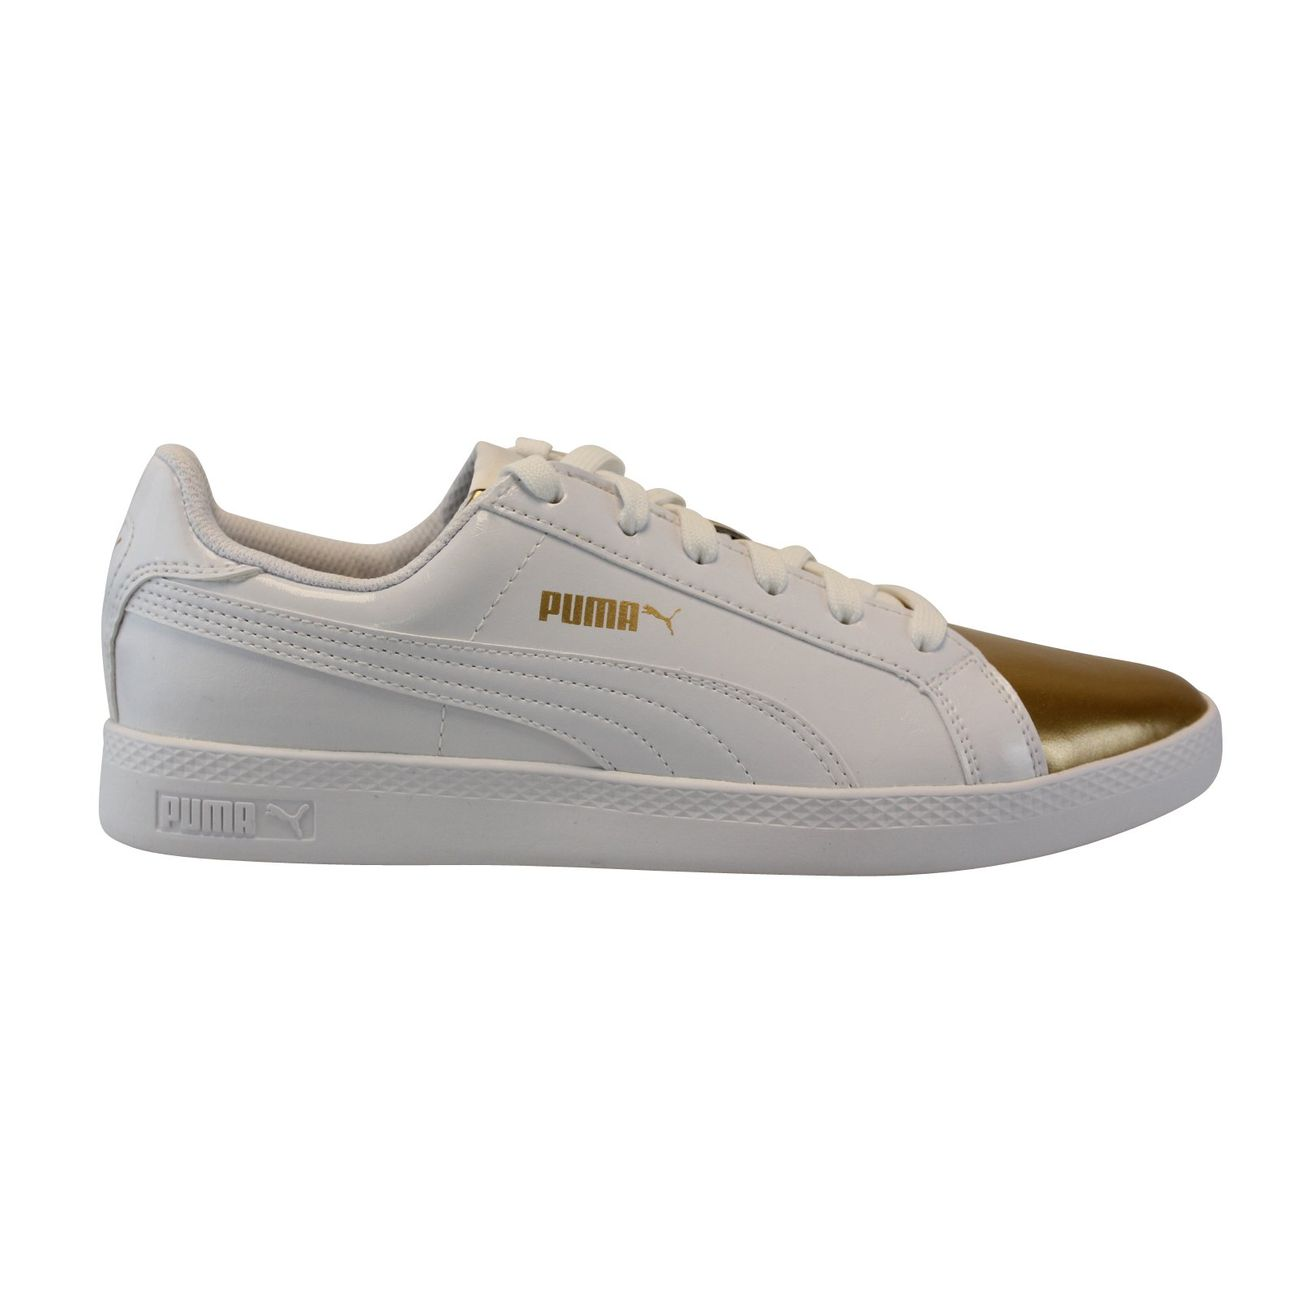 Puma Chaussures 363611 Sneakers Femmes Blanc Puma soldes